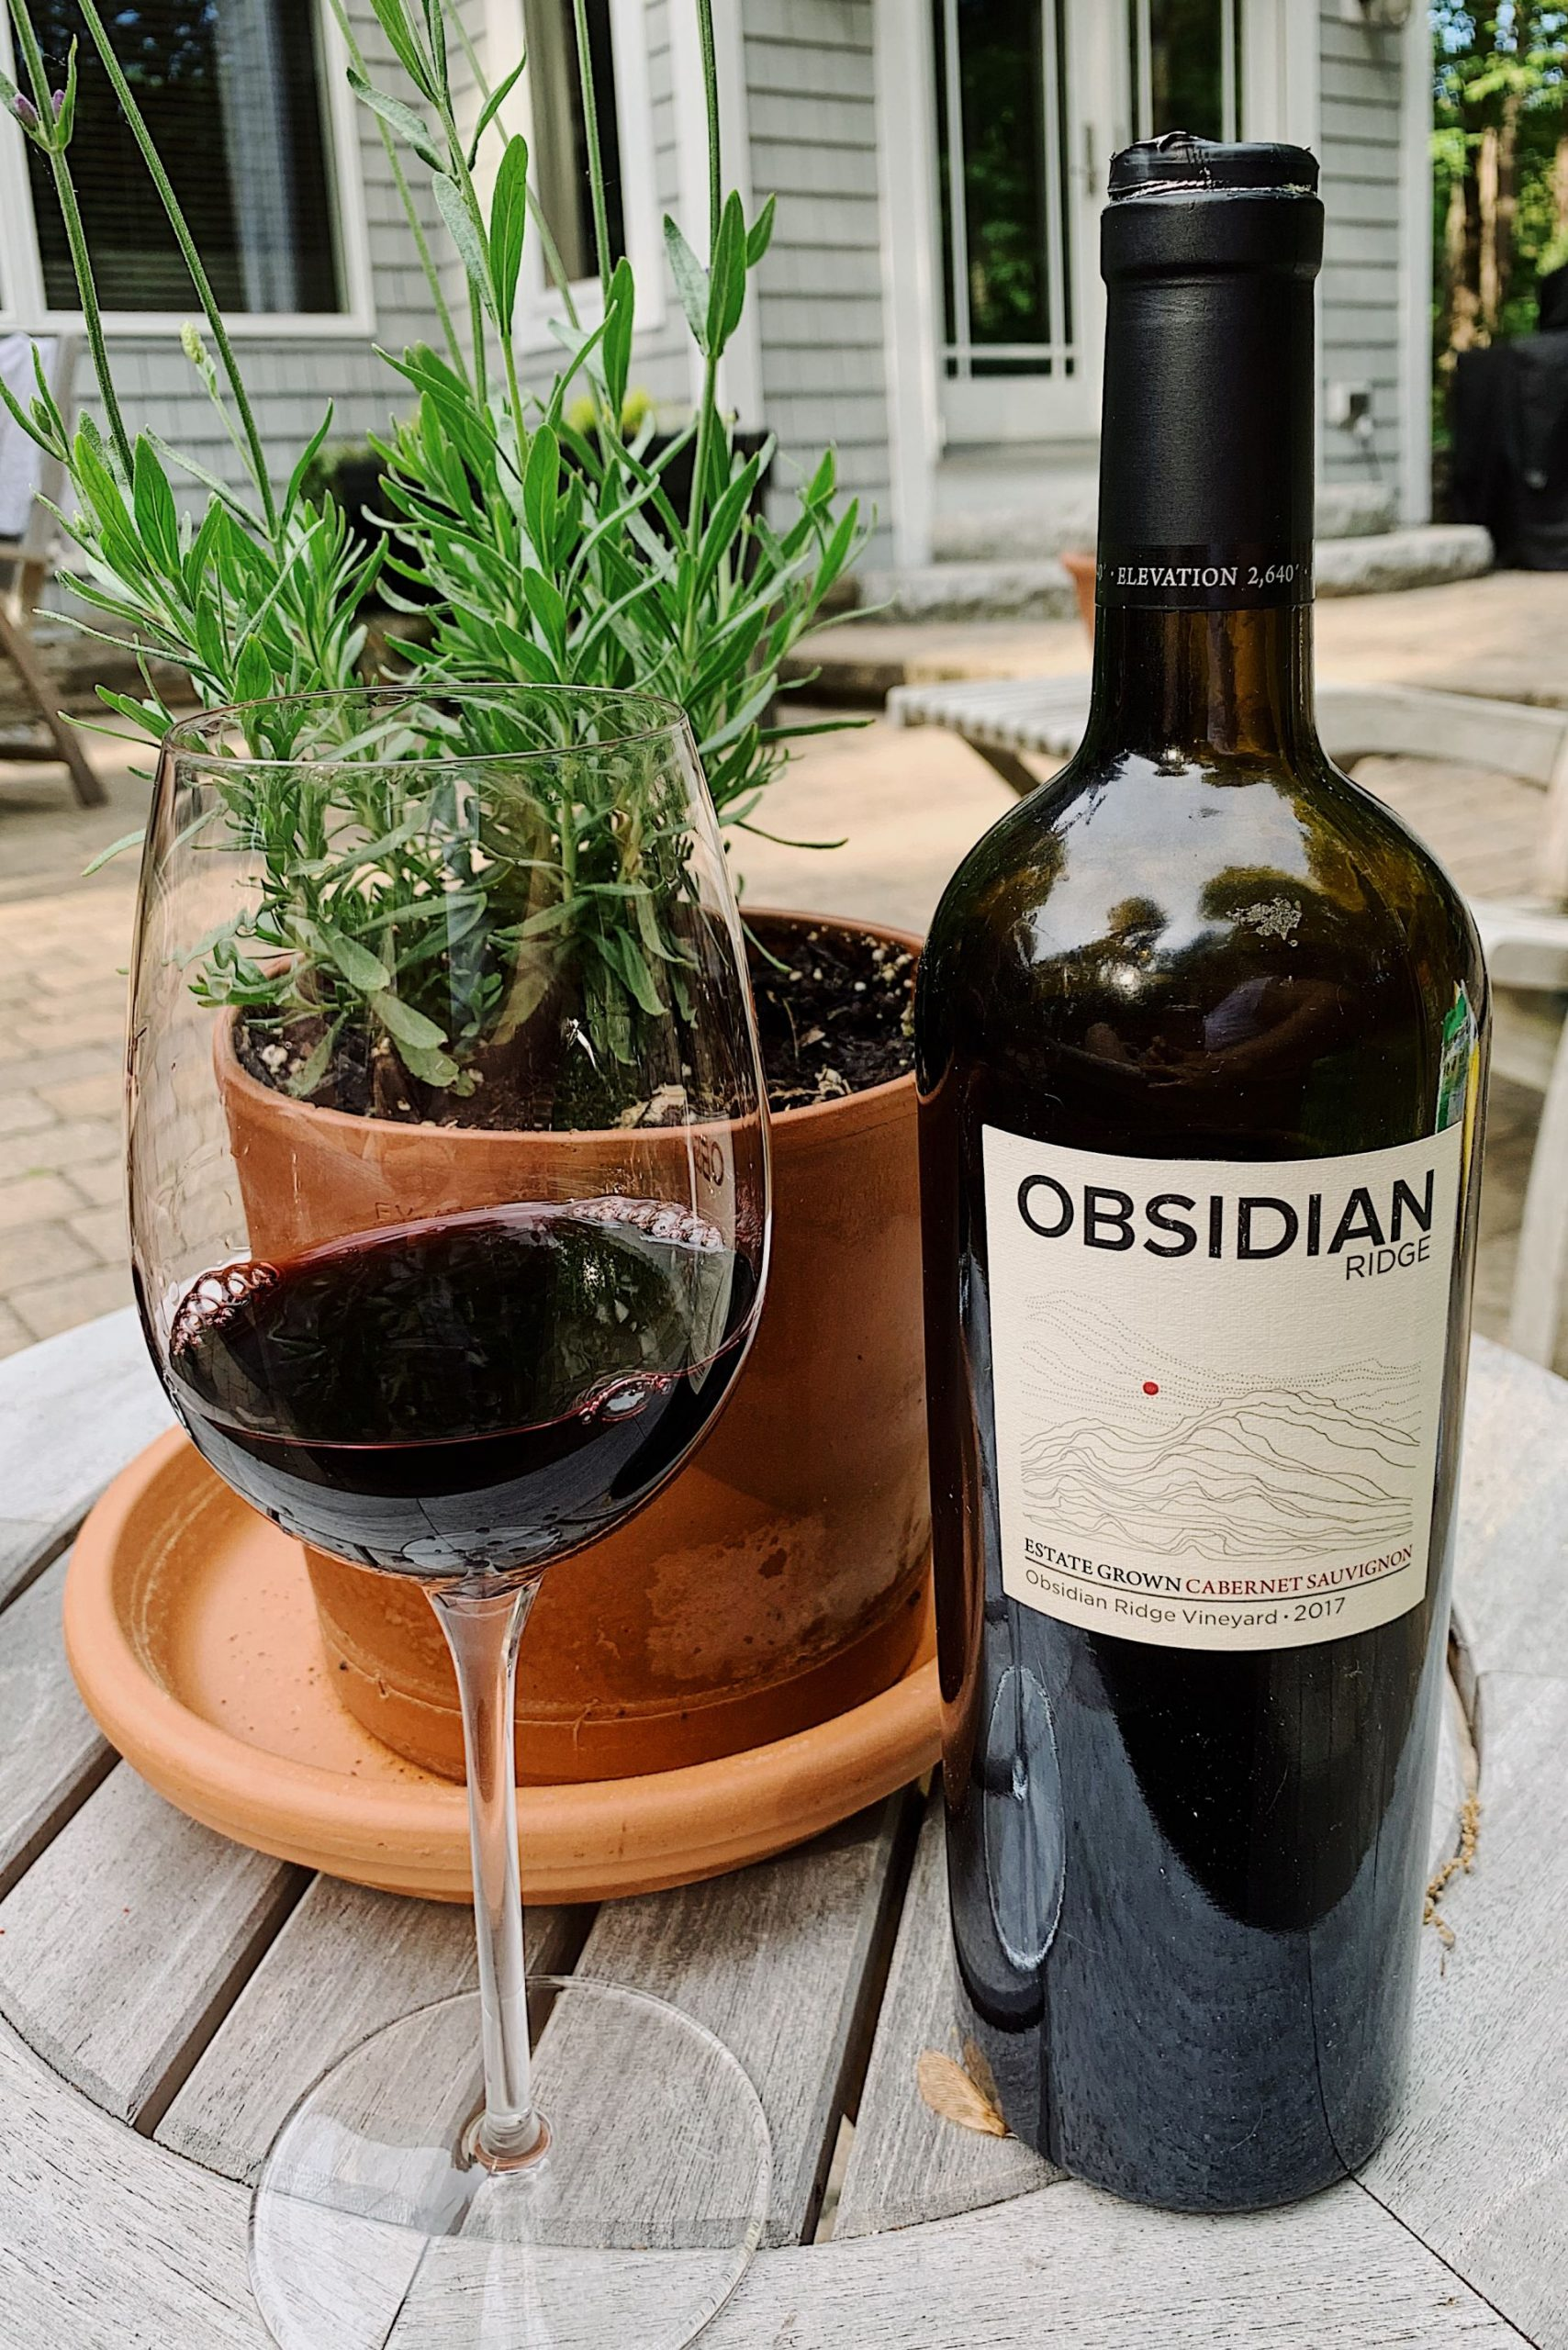 Obsidian Ridge Estate Grown Cab | Food blogger Meaghan Murray shares a post on her favorite wine during Summer 2020 on her blog The Stopover